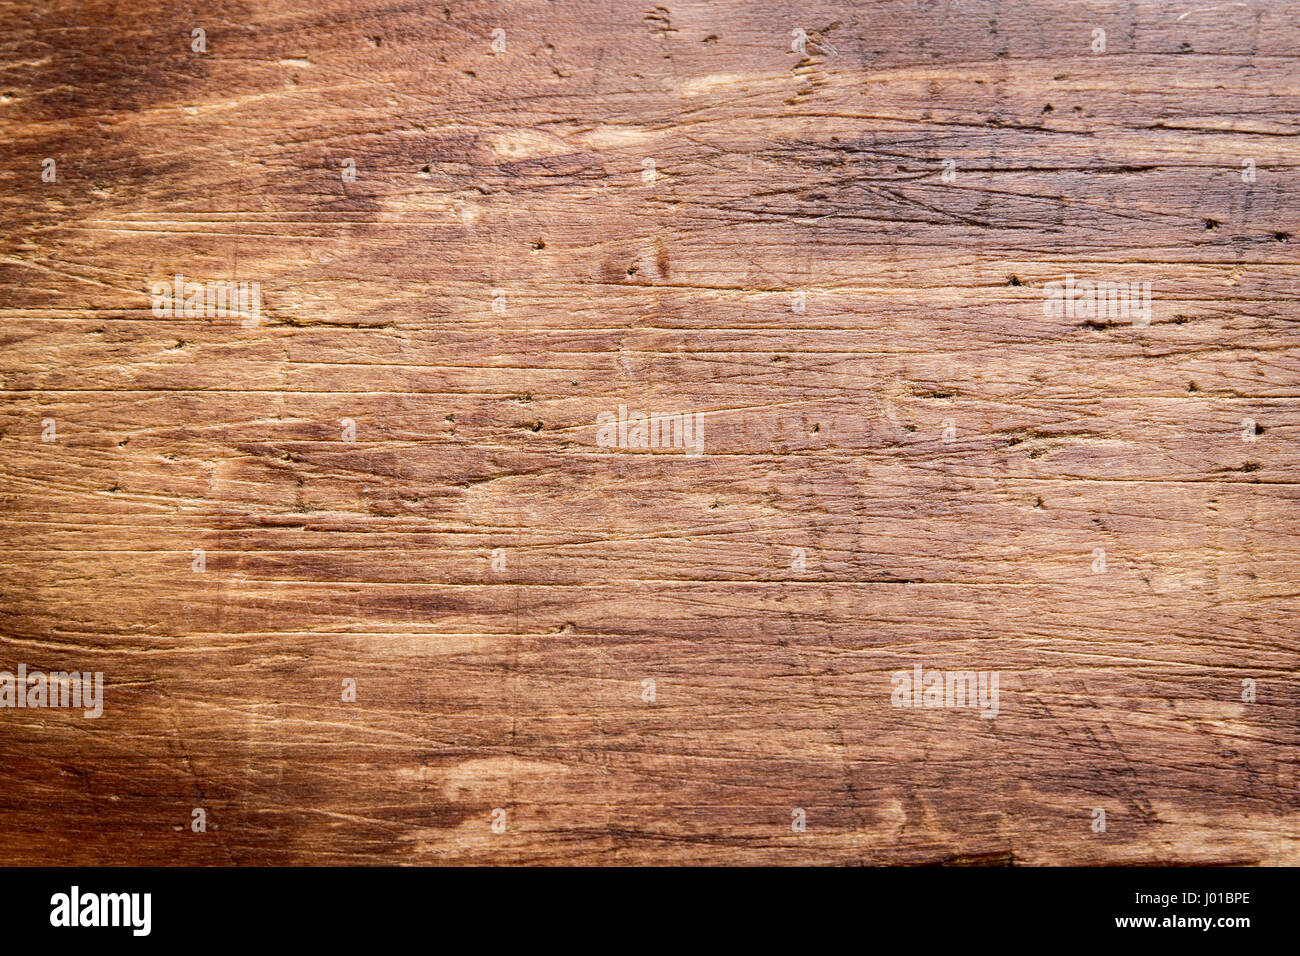 rustic wooden cutting board background close up rustic